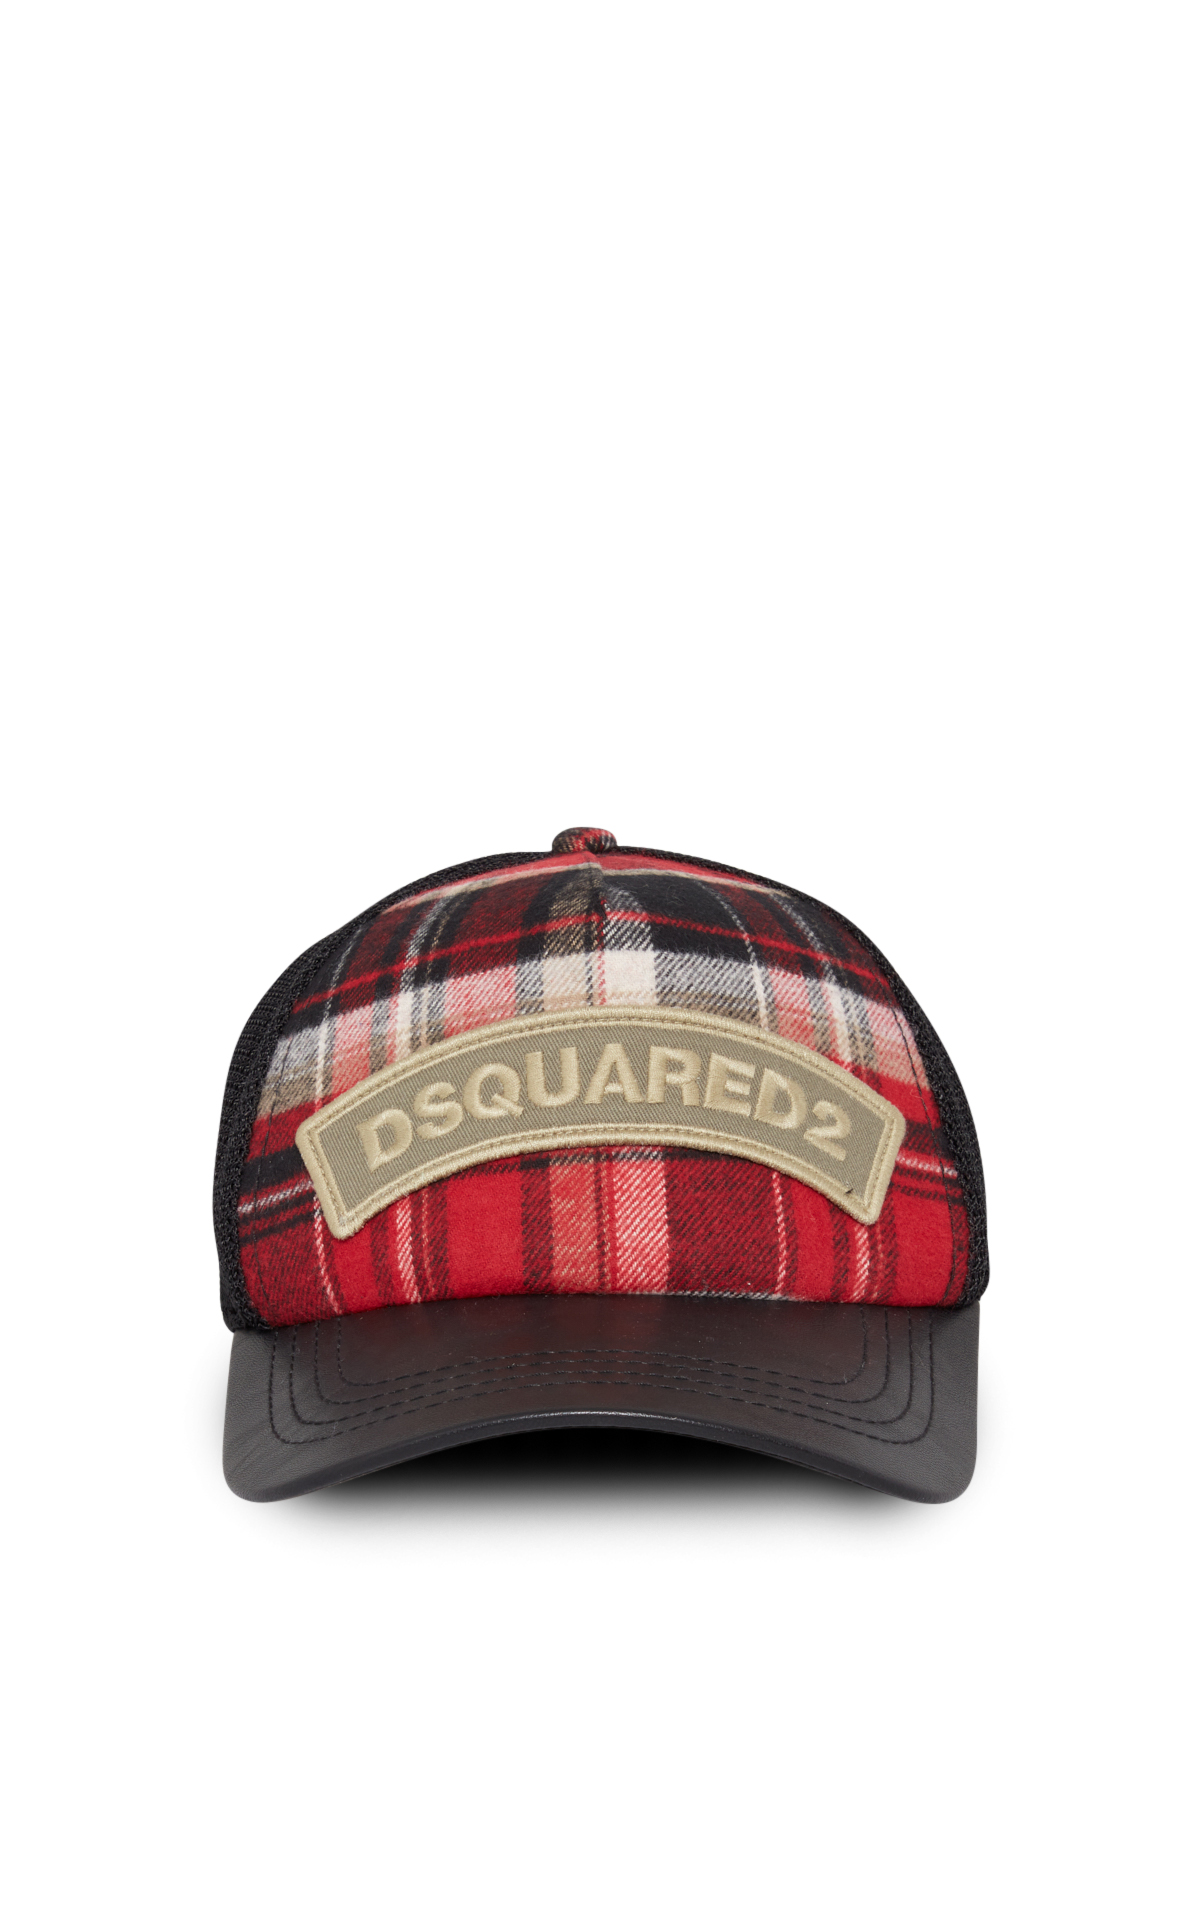 DSQUARED2 Black and red tartan cap